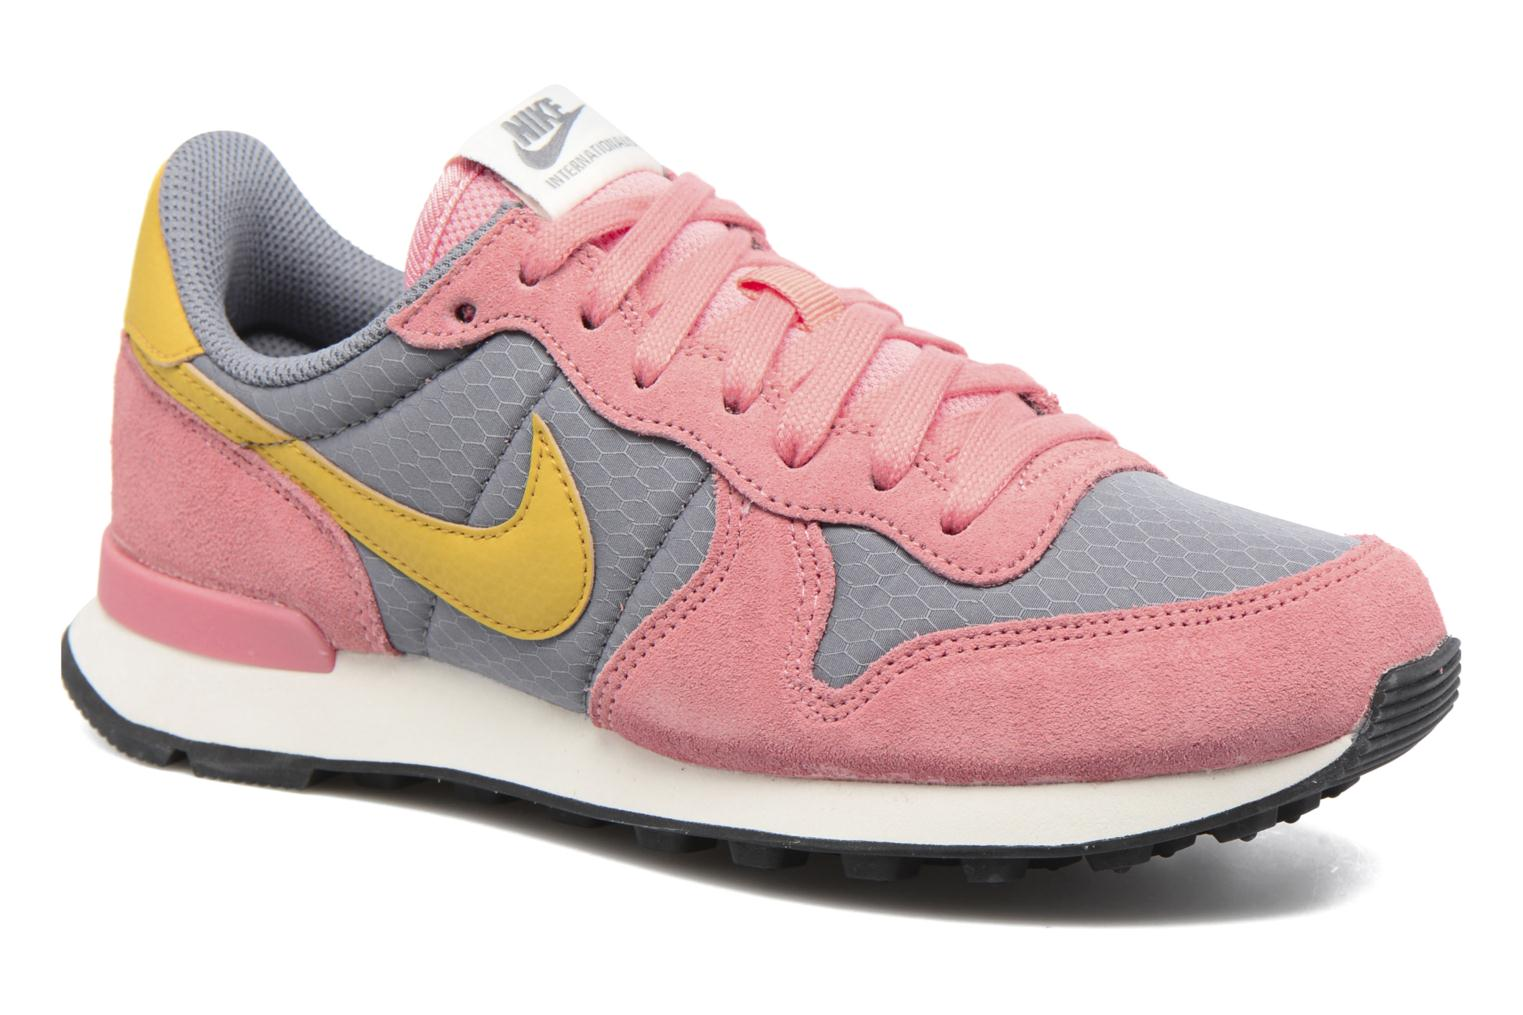 Wmns Internationalist Cool Grey/Gold Dart-Bright Melon-Sail